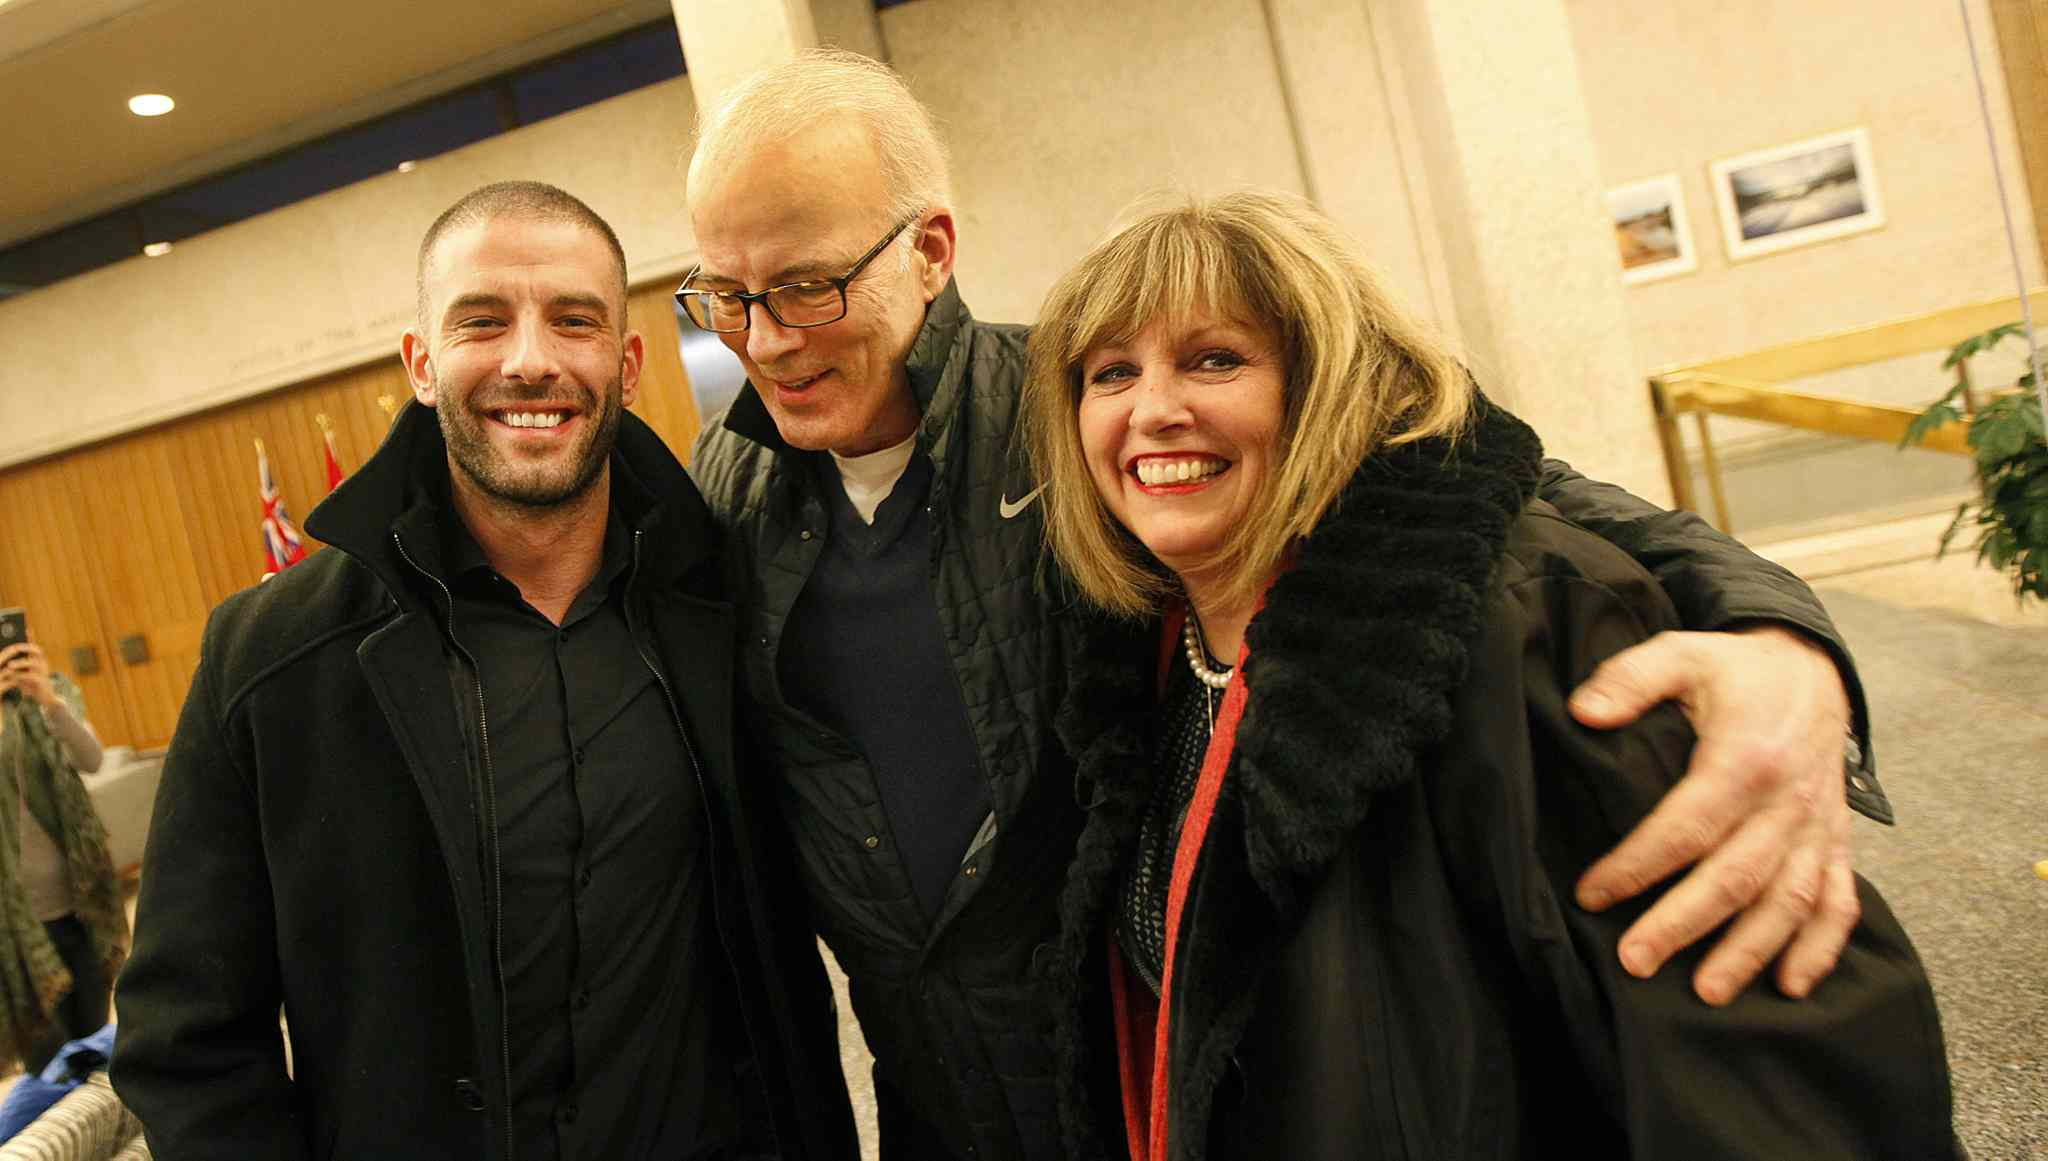 PHIL HOSSACK / Winnipeg Free Press - Left to right - Darcy Oake and his parents Scott and Anne celebrate after a city council vote approving the recovery centre at the Vimy Arena site Thursday.   -  January 25, 2018